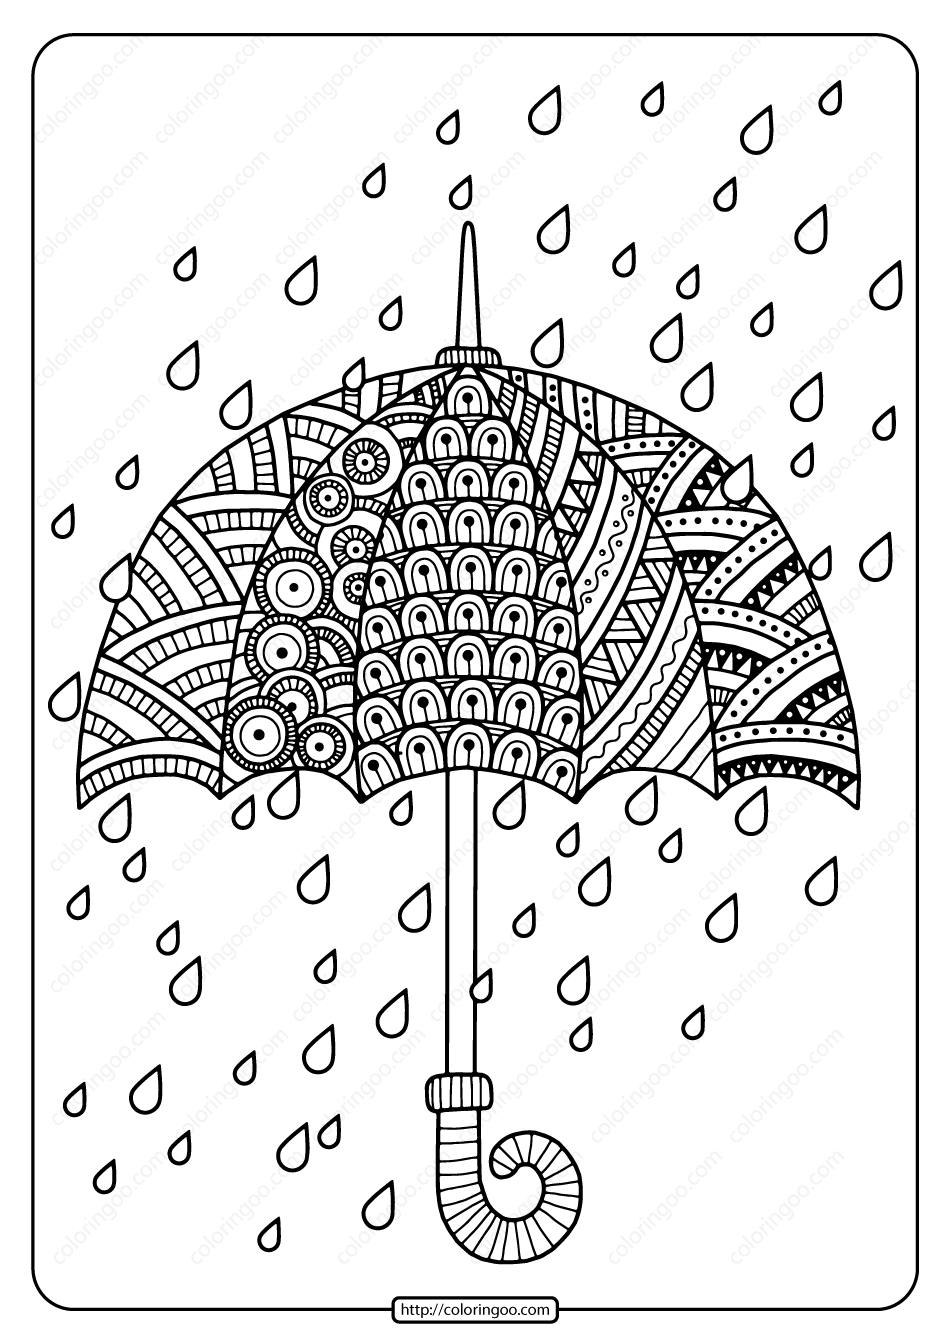 Printable Rain Drops With Umbrella Coloring Page Umbrella Coloring Page Spring Coloring Pages Coloring Pages